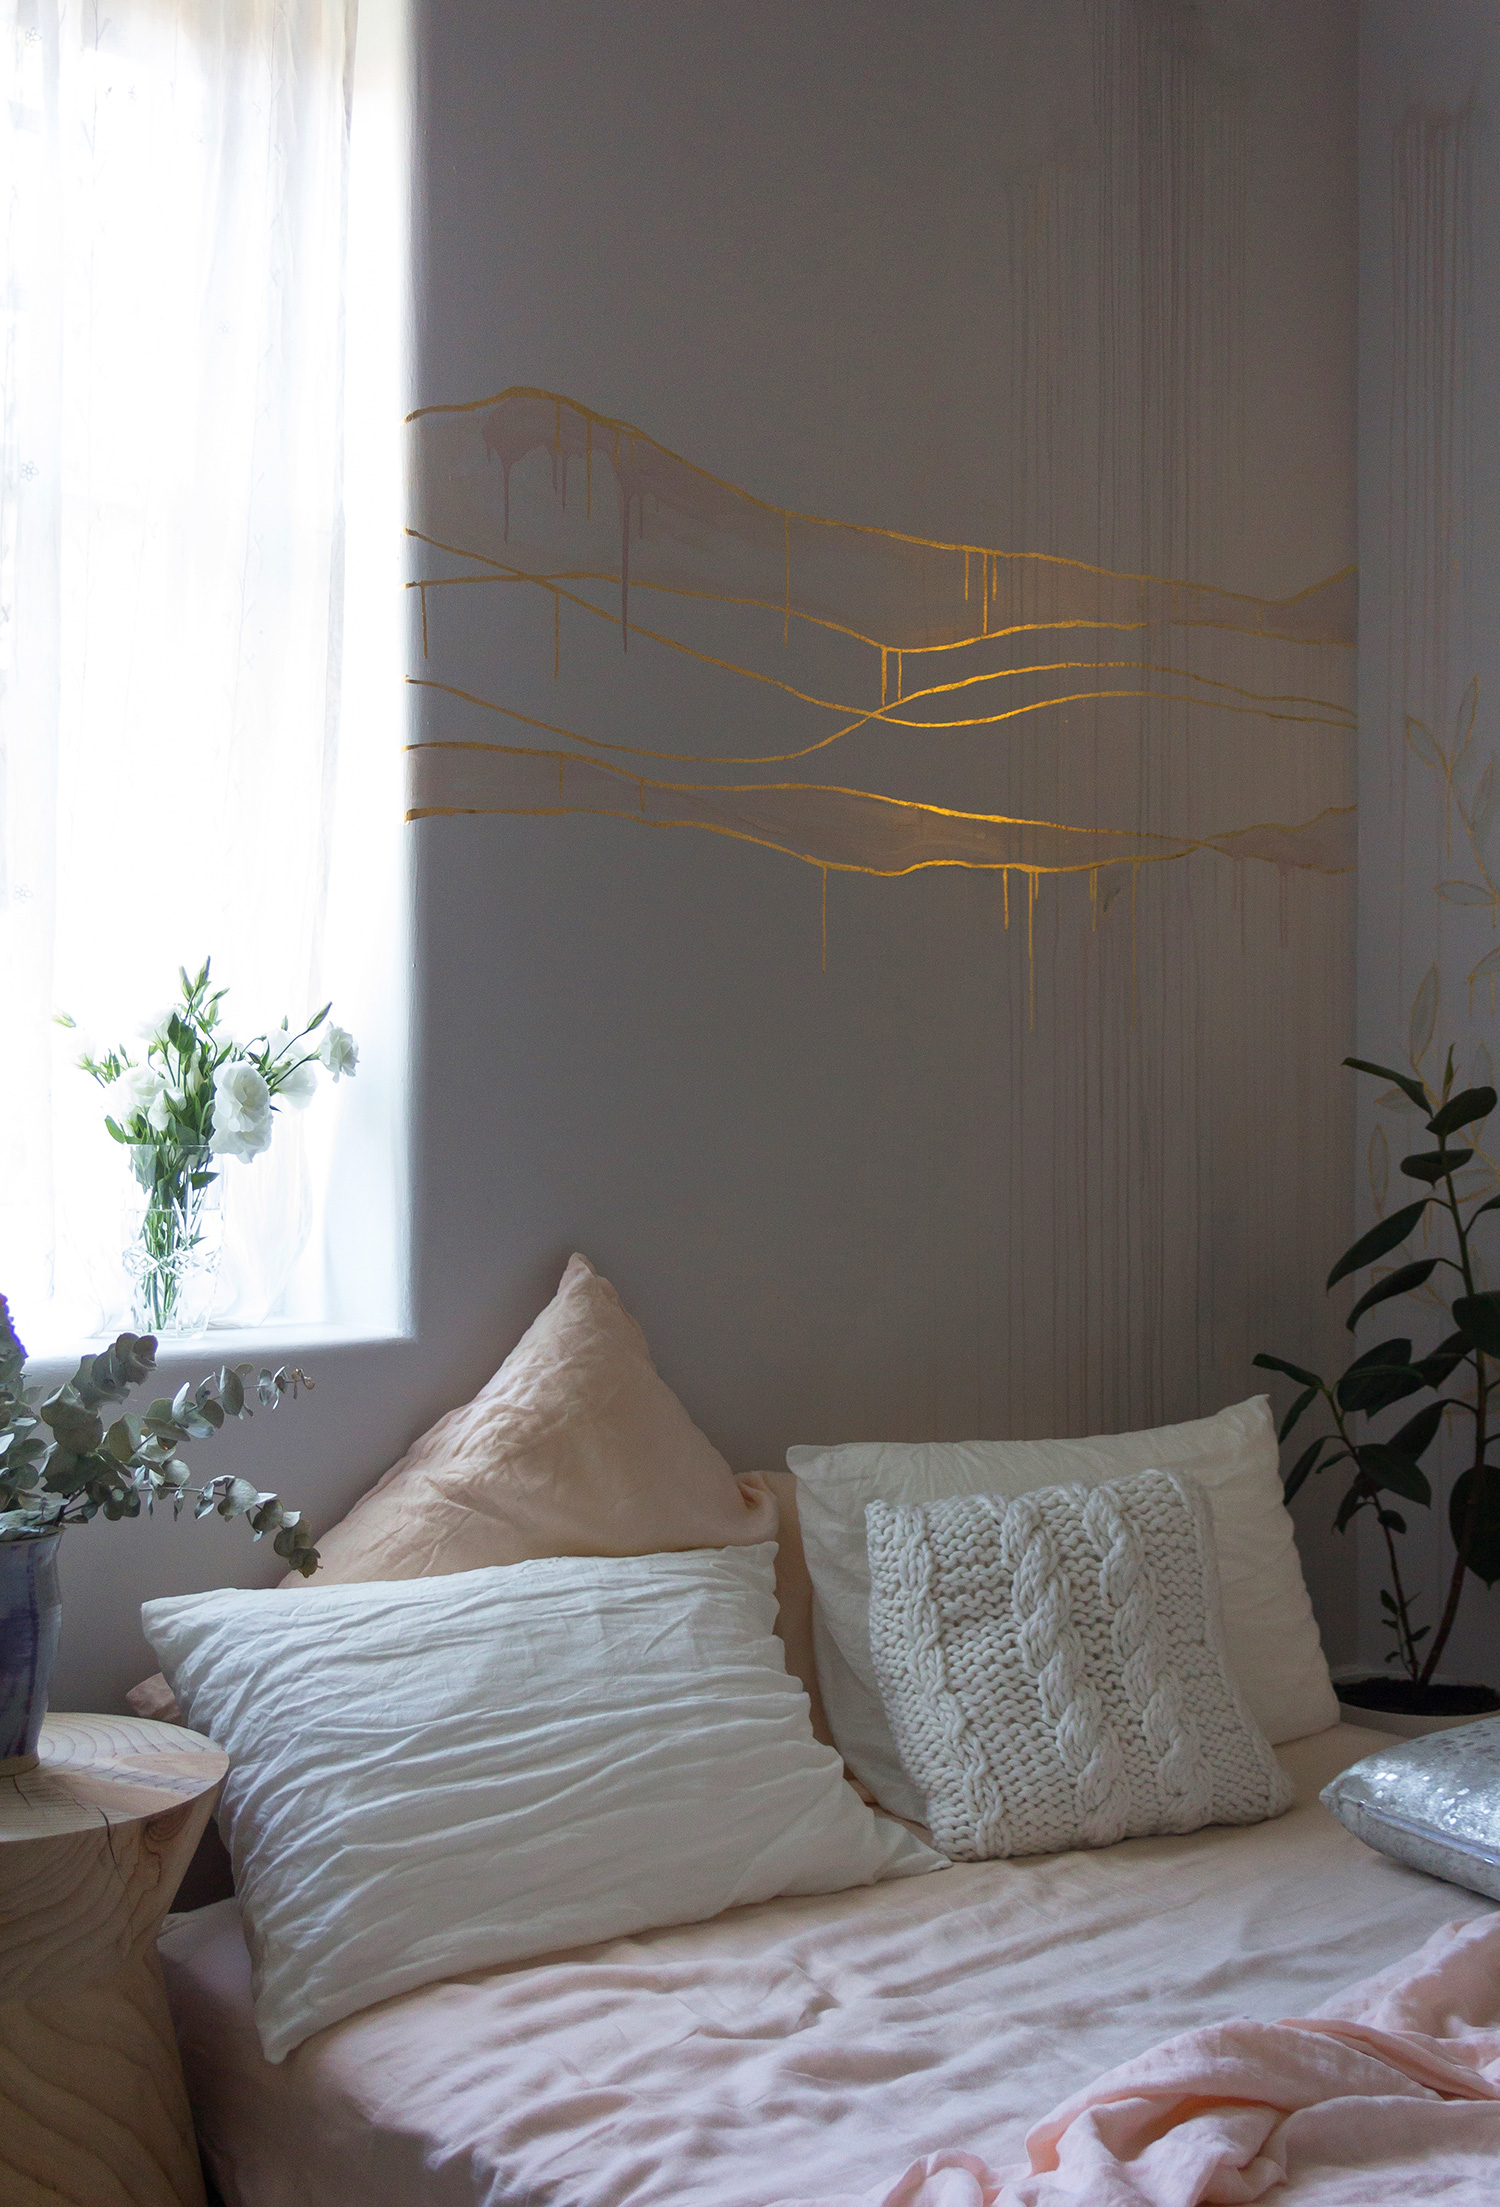 Gold leaf feature wall in cosy bedroom, the wall features wavy lines in gold and pink metallic paint. Light pours through a thin white curtain and plants surround the bed.